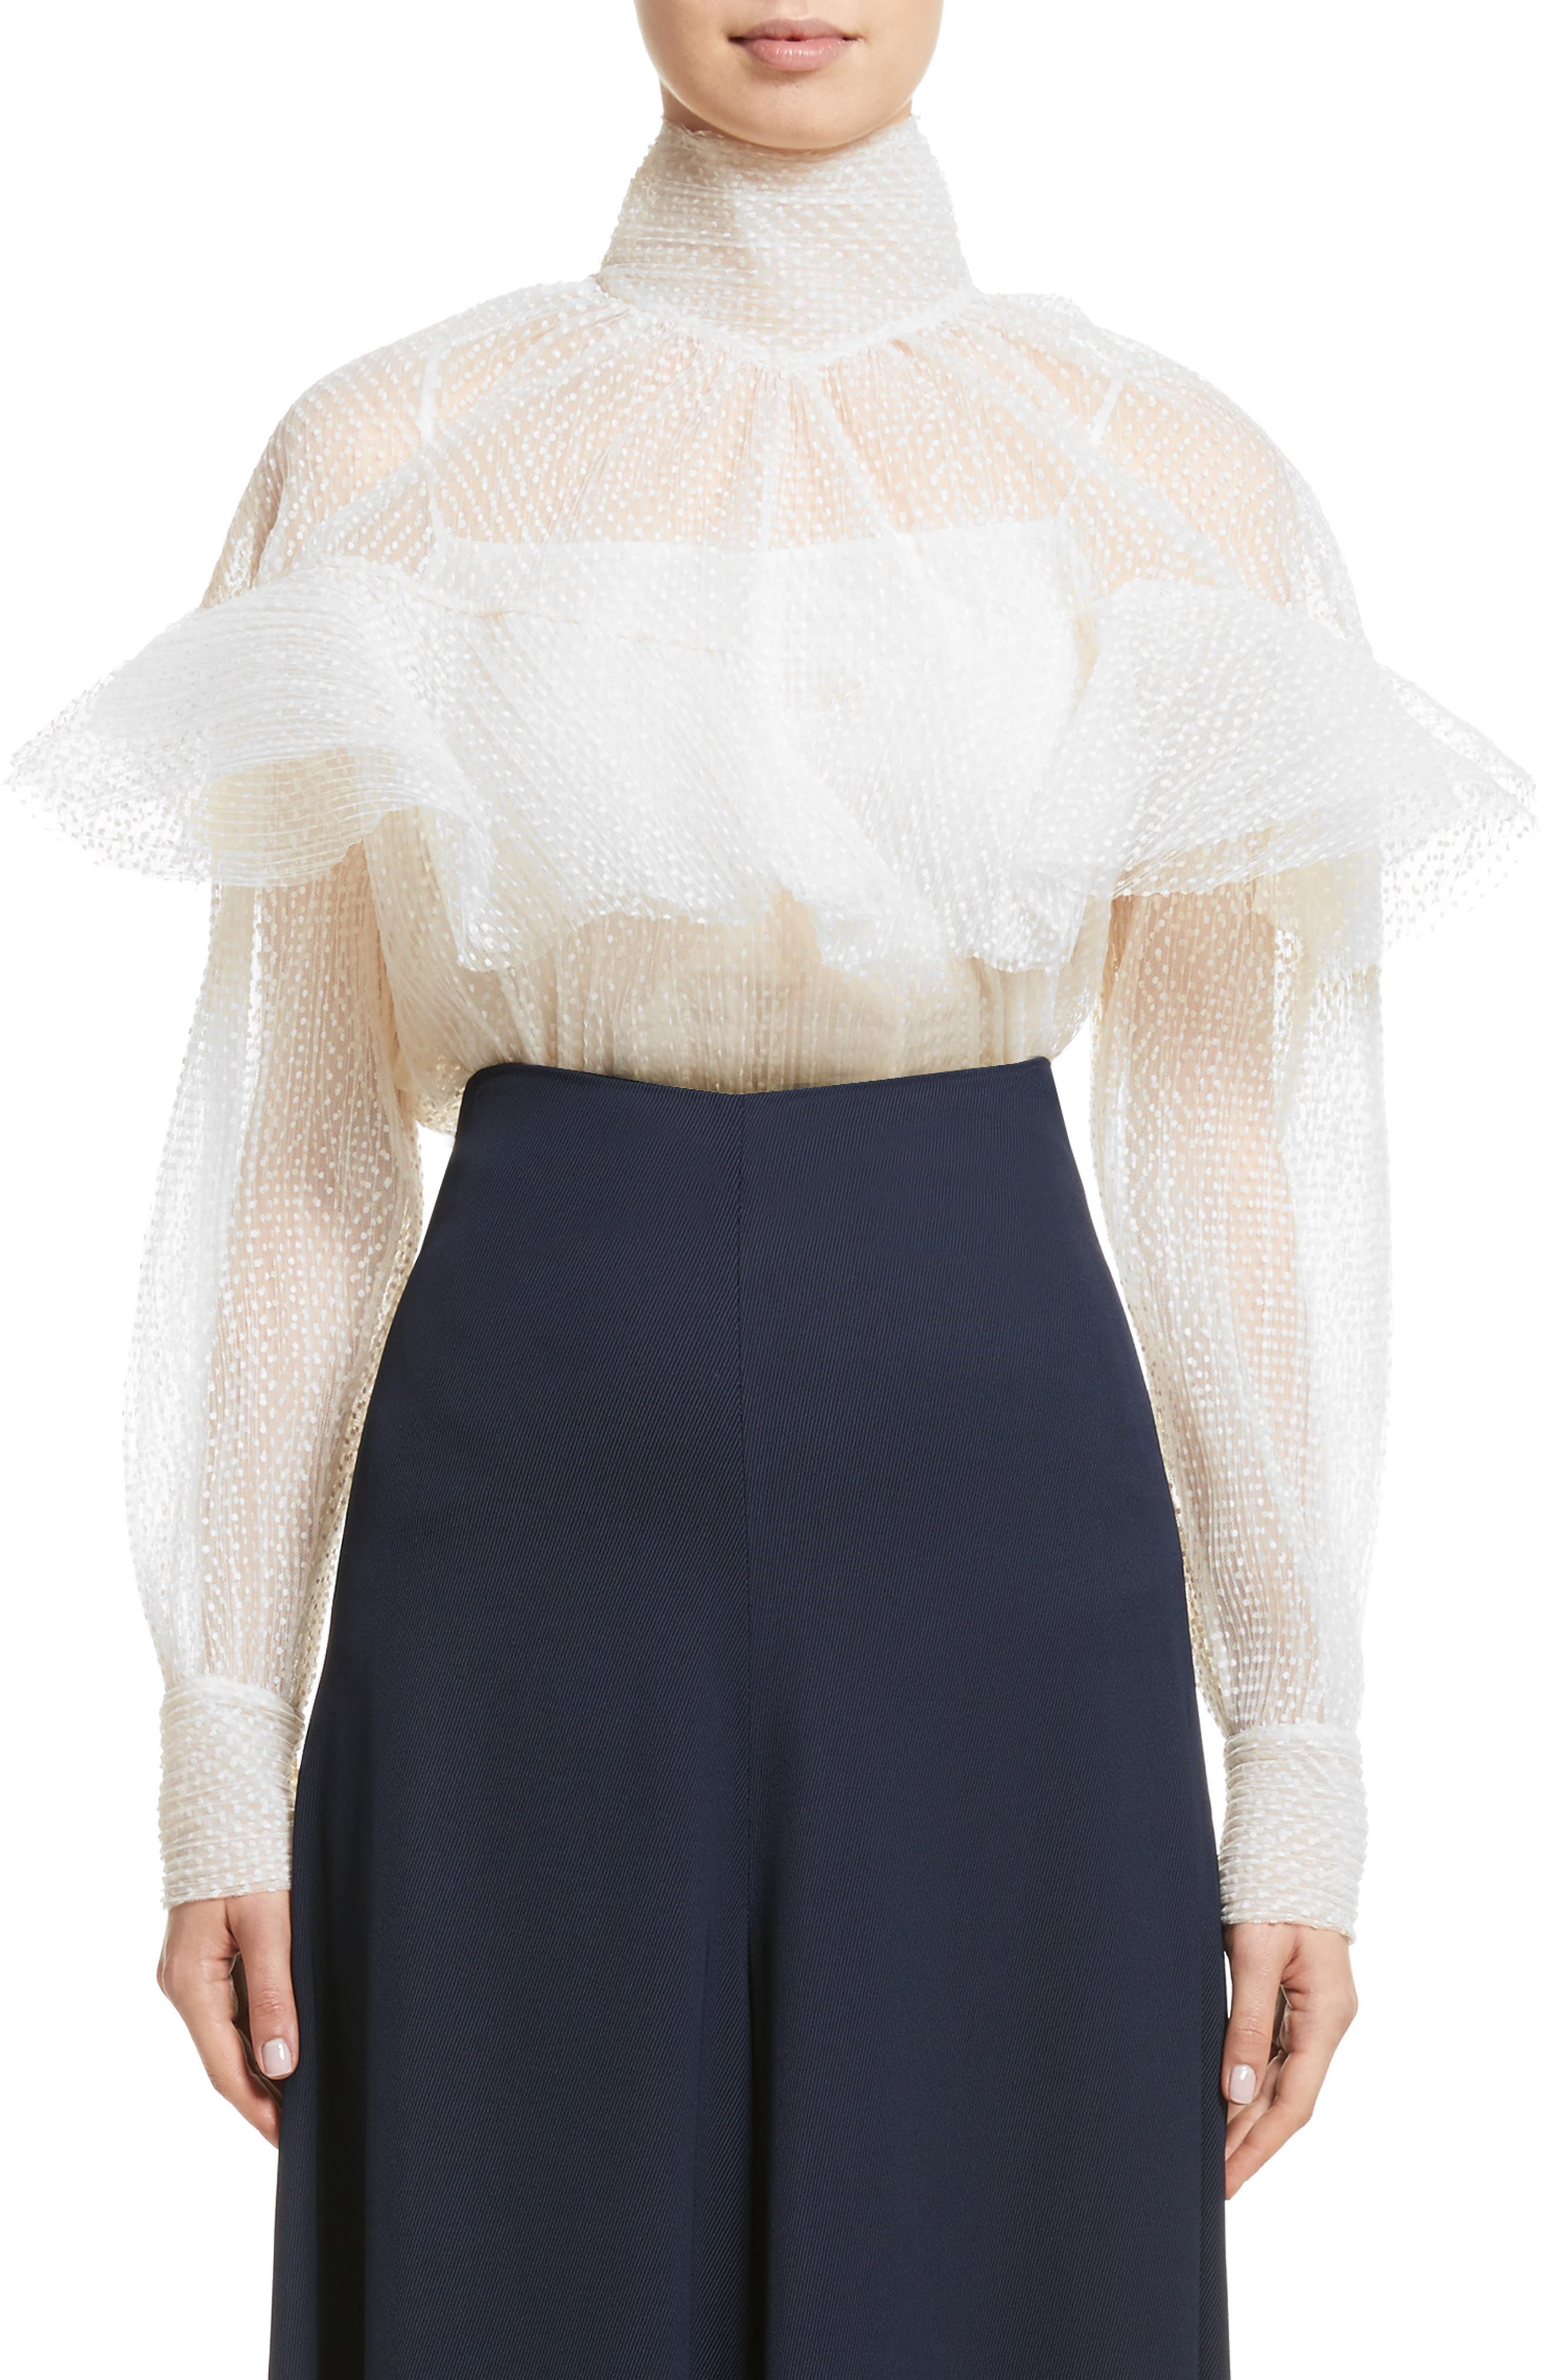 A.W.A.K.E Frill Double Layered Tulle Top,                             Main thumbnail 1, color,                             900